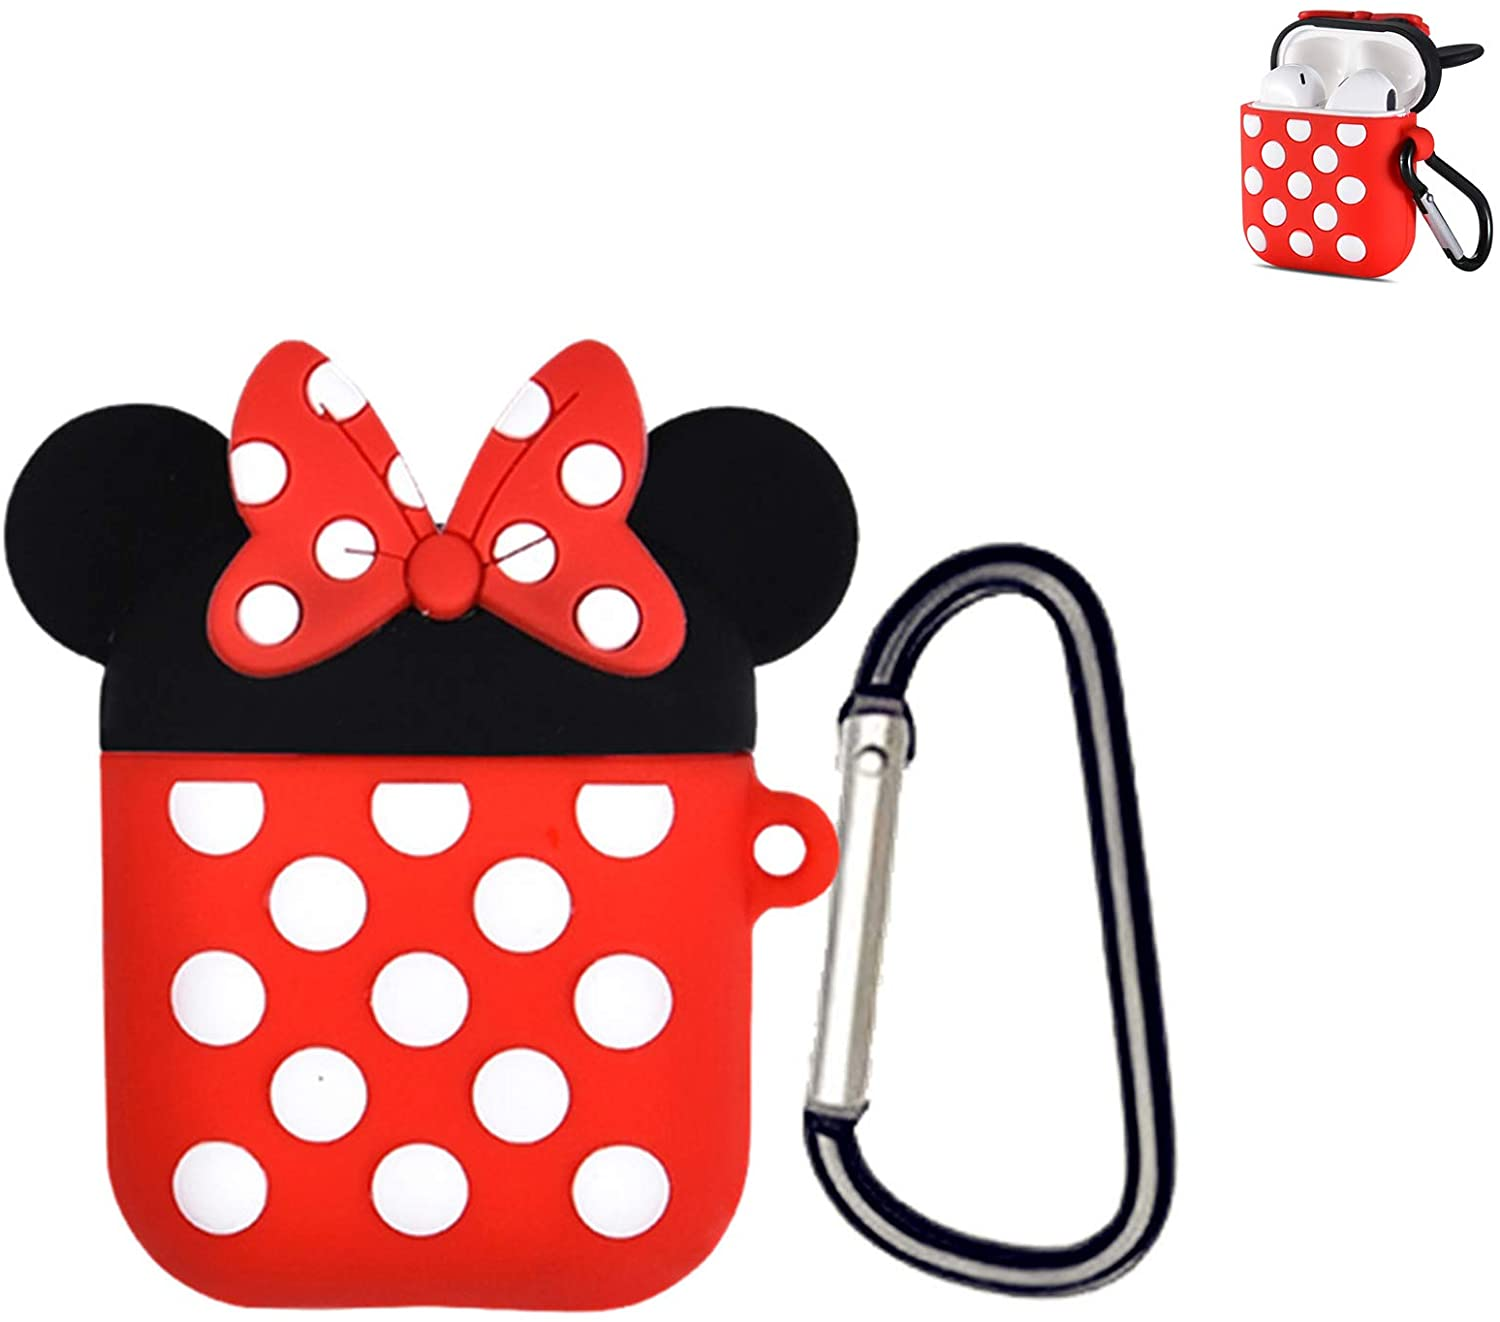 for Airpods Case, 2020 Newest Full Protective Shockproof Minnie Mouse Case Cover, Protective Soft 3D Cartoon Silicone Cover Case Compatible for Airpods 2 &1 Charging Cases with Carabiner Keychain